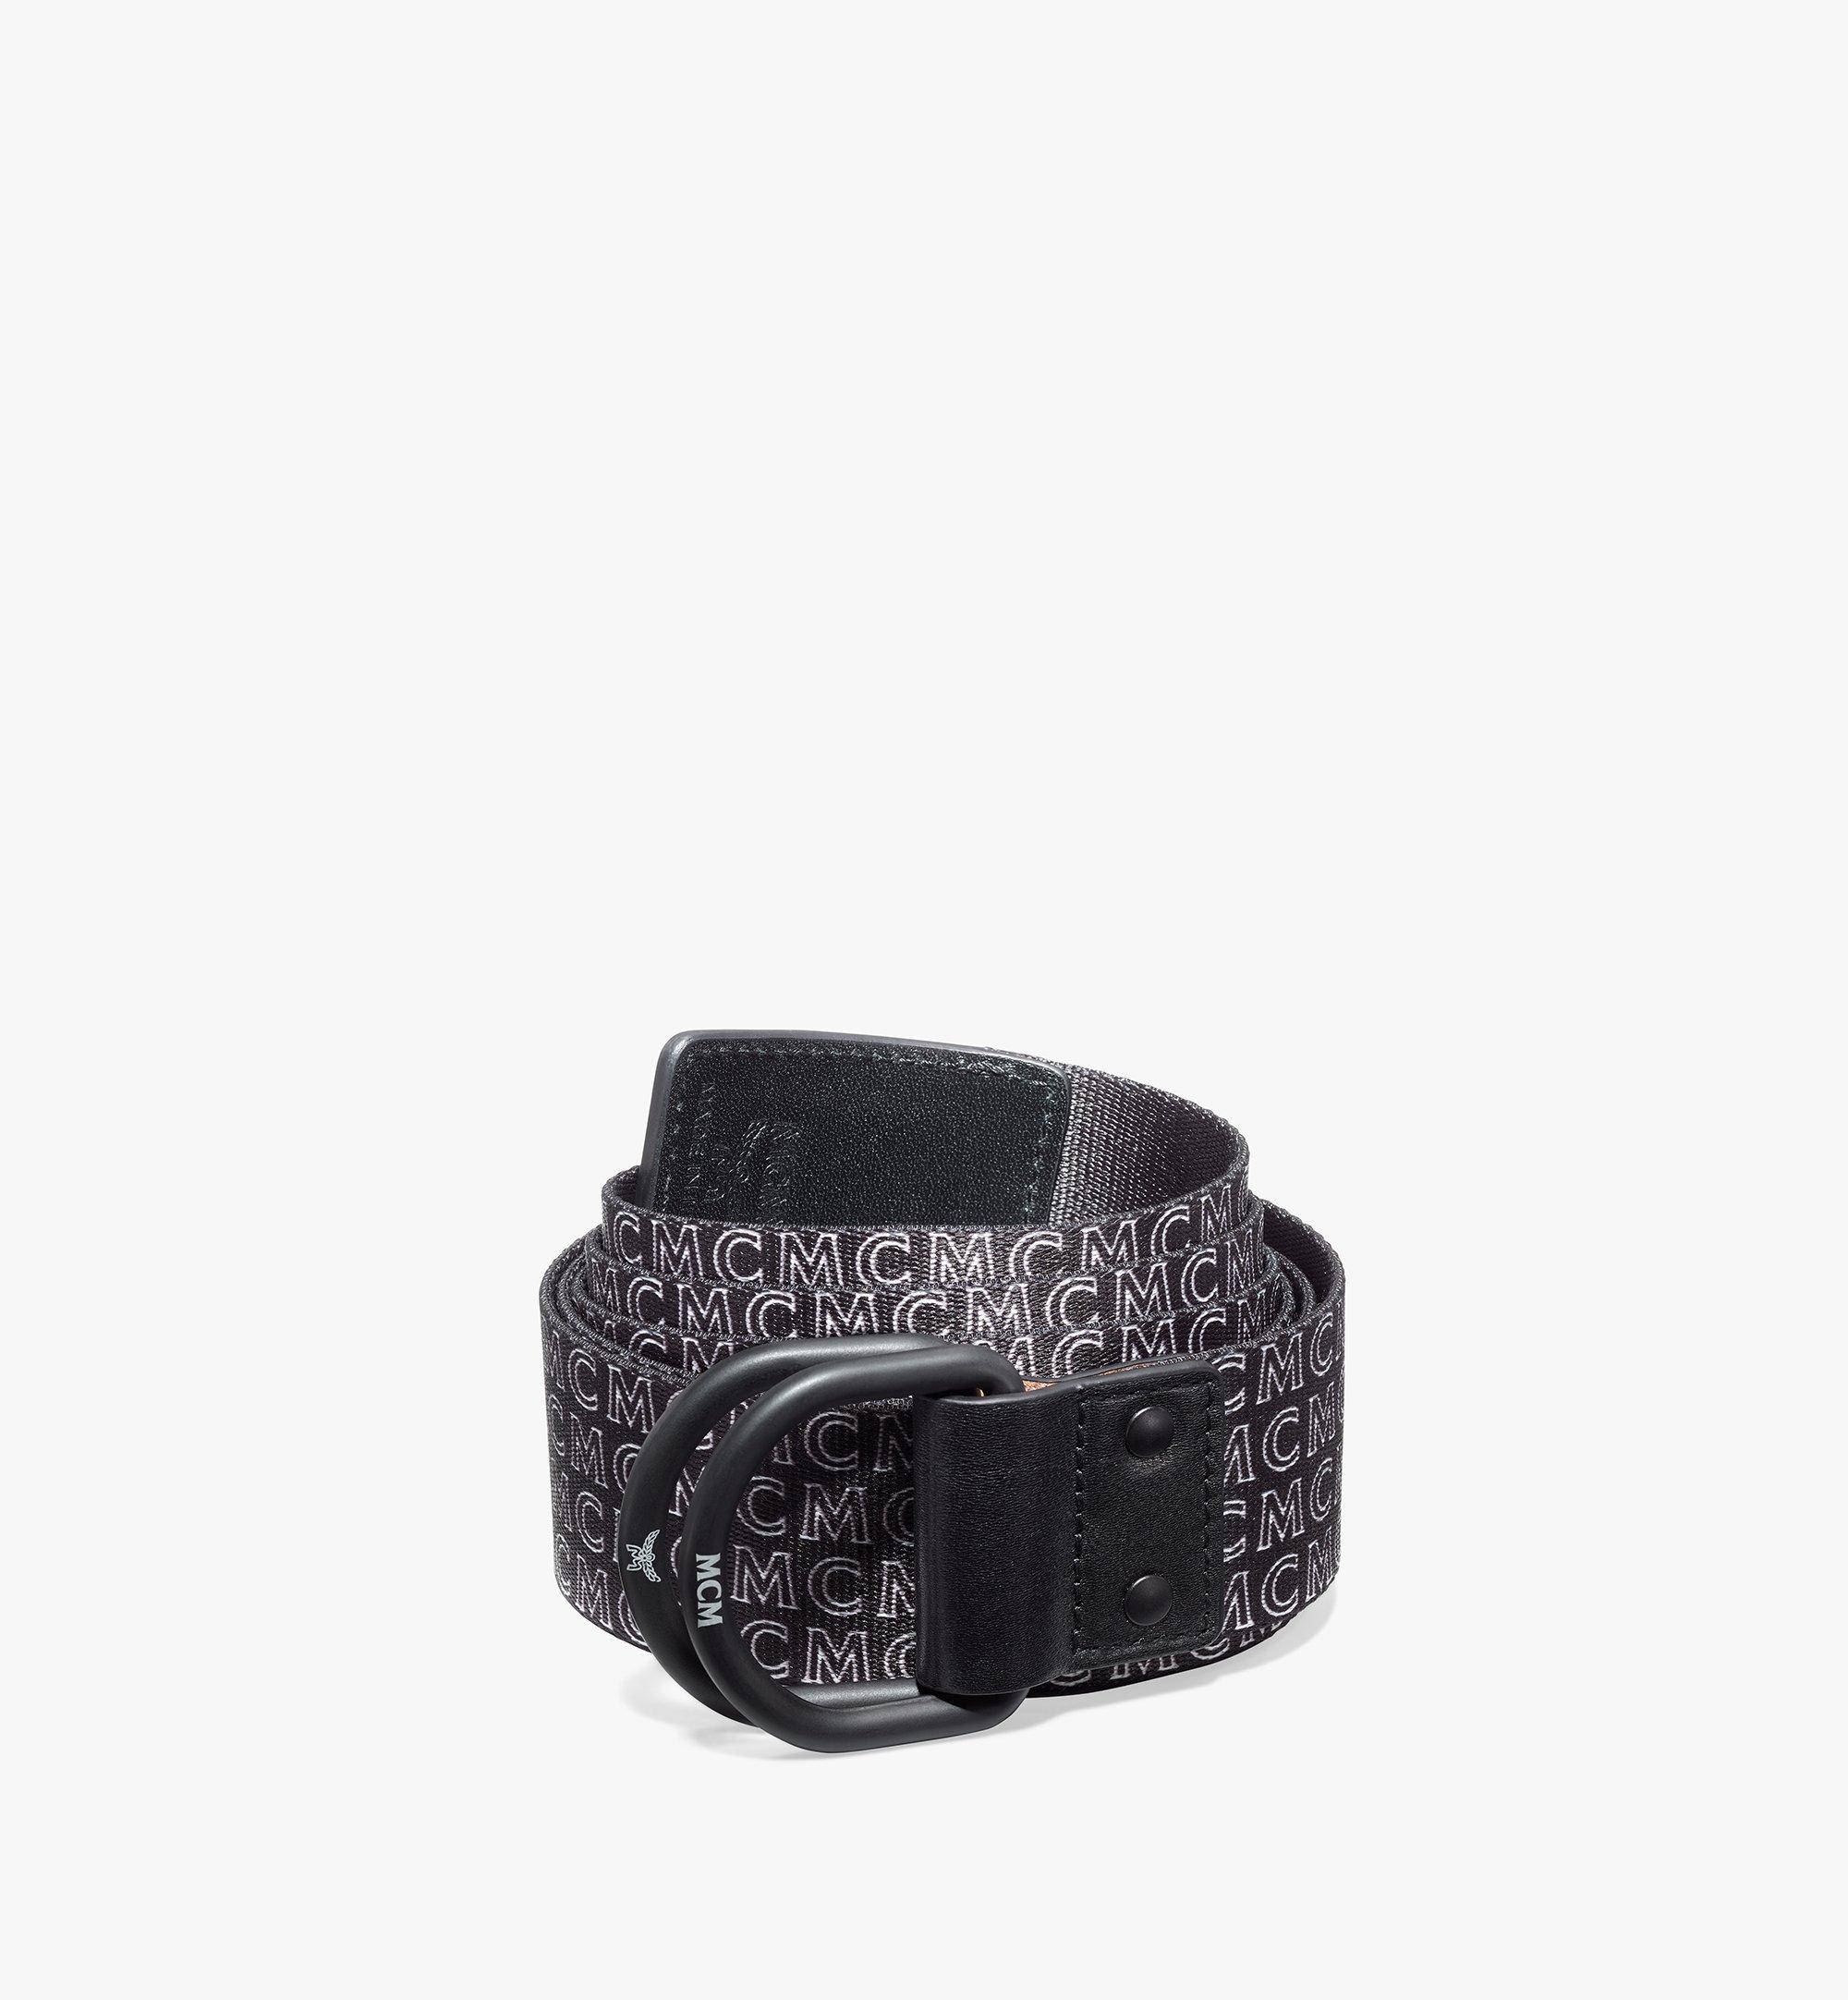 "MCM Ring Webbing Belt 1.5""  - BLACK - Size: ADJ"